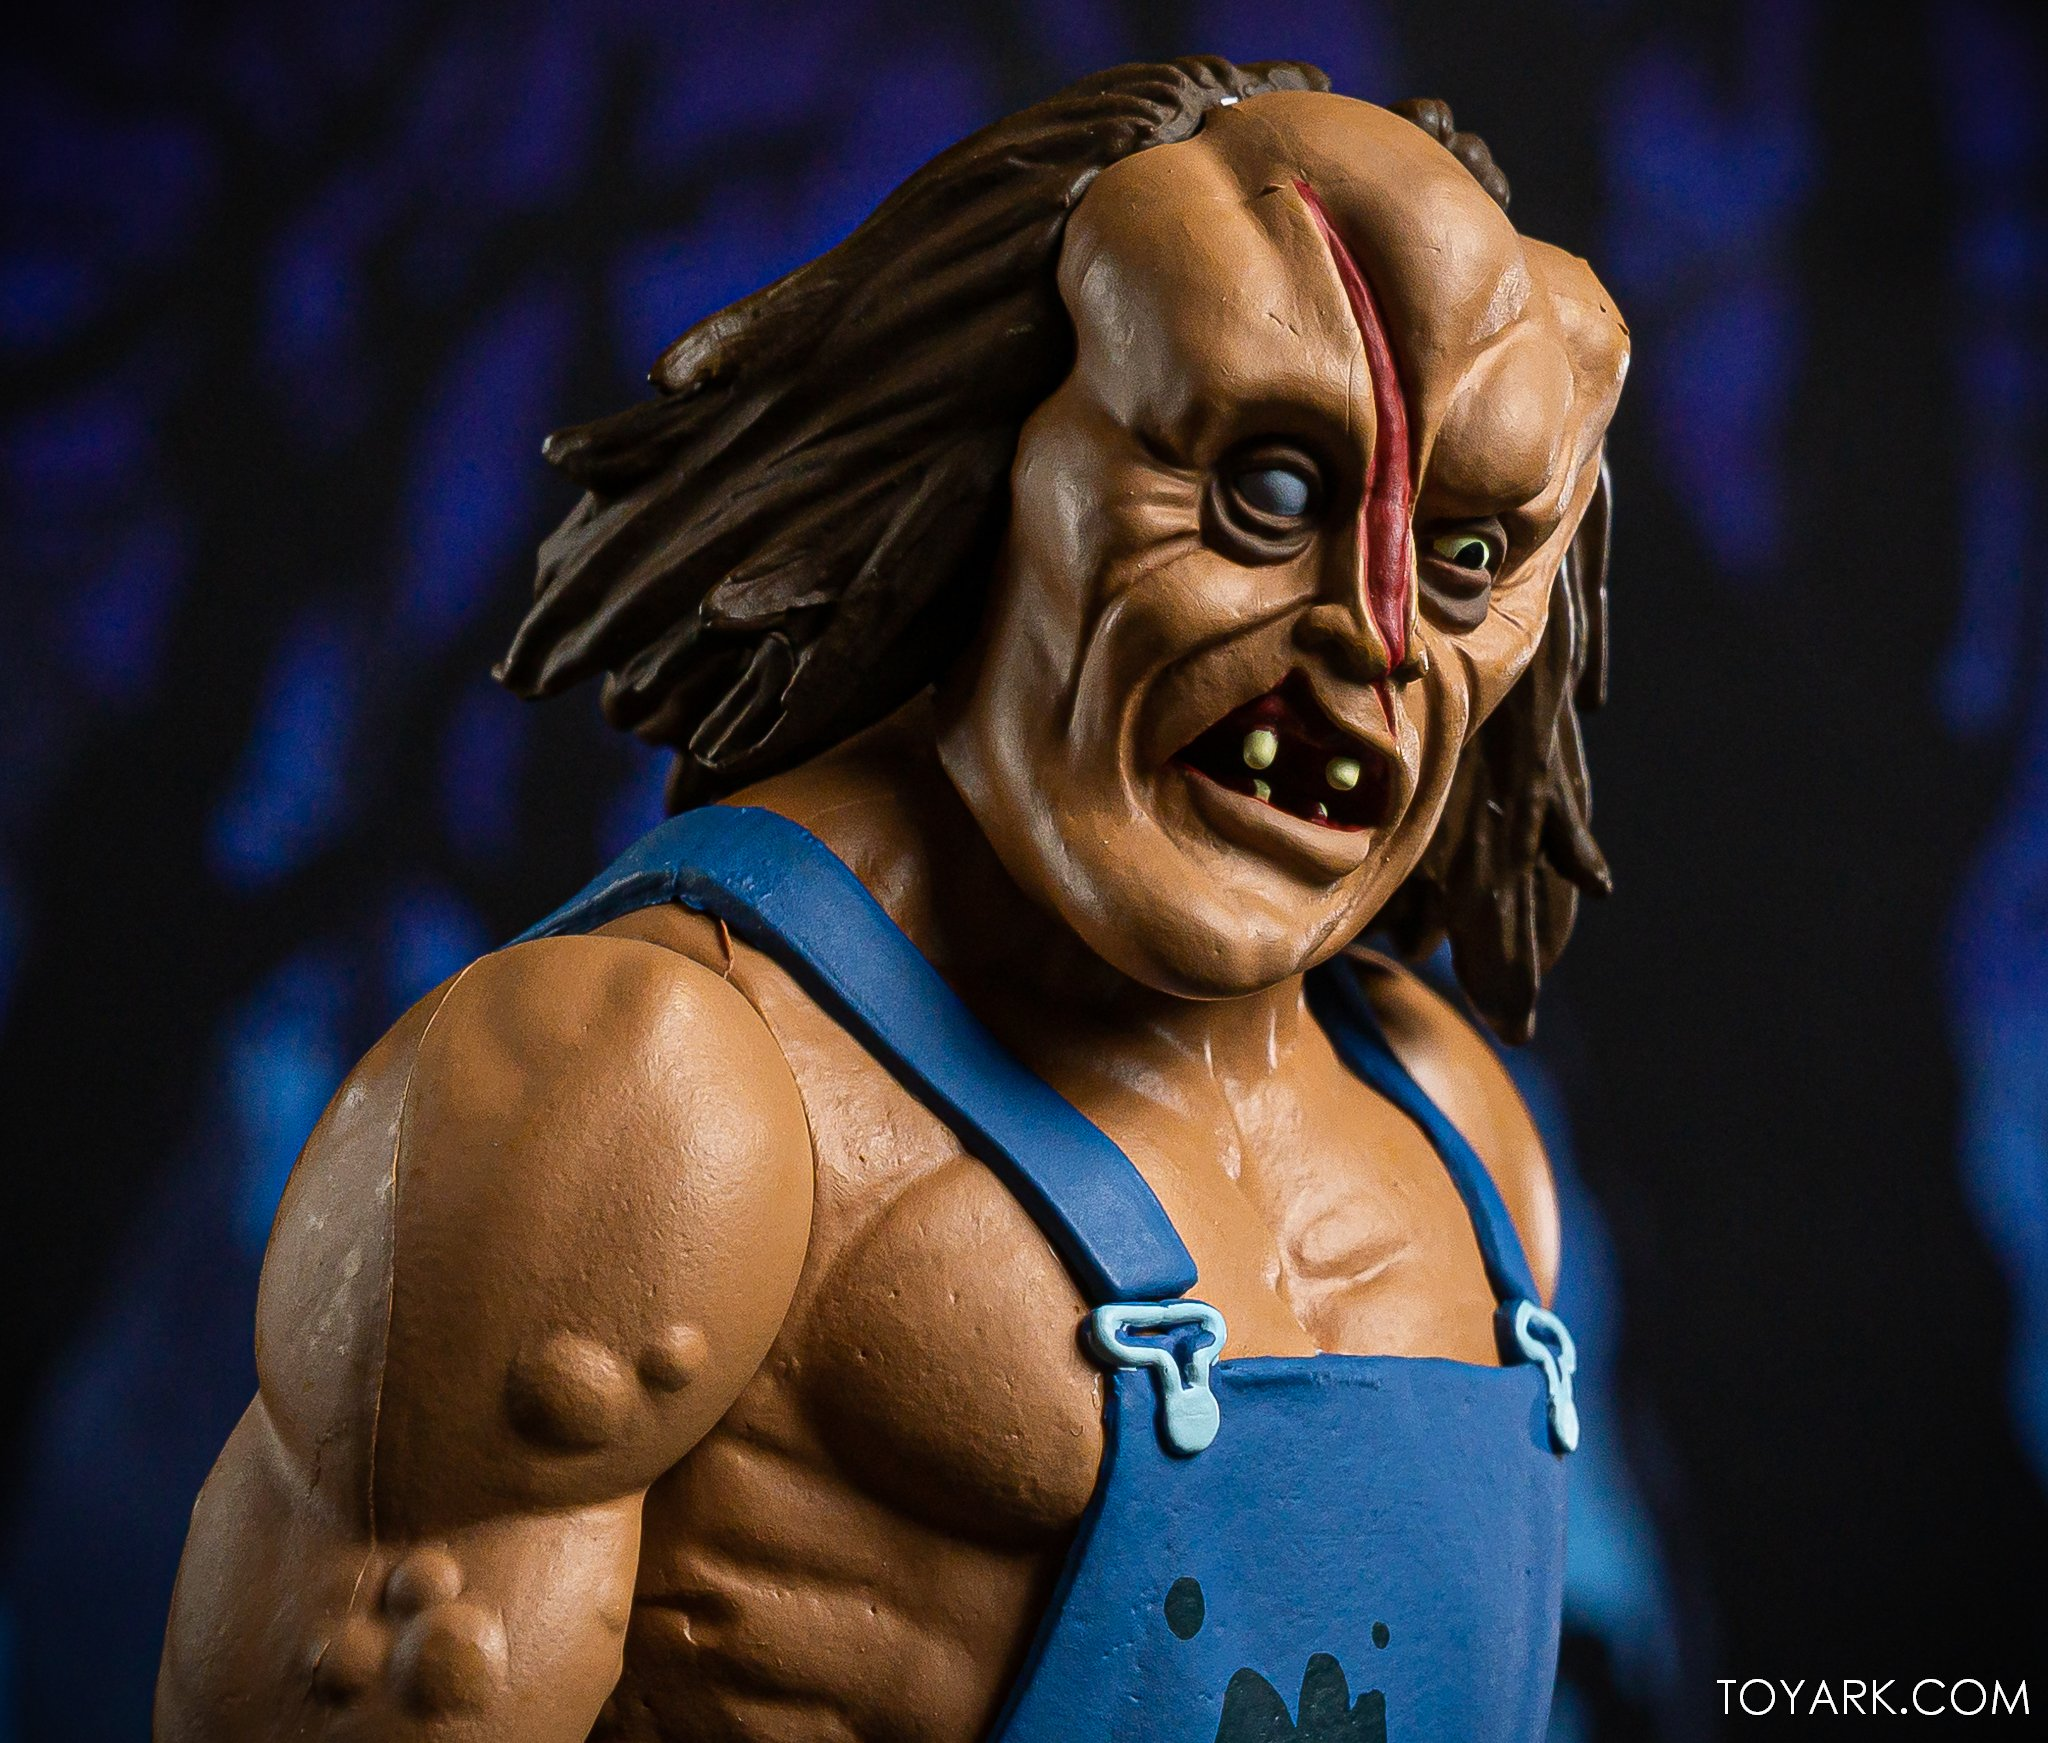 https://news.toyark.com/wp-content/uploads/sites/4/2020/11/Toony-Terrors-Series-4-NECA-037.jpg